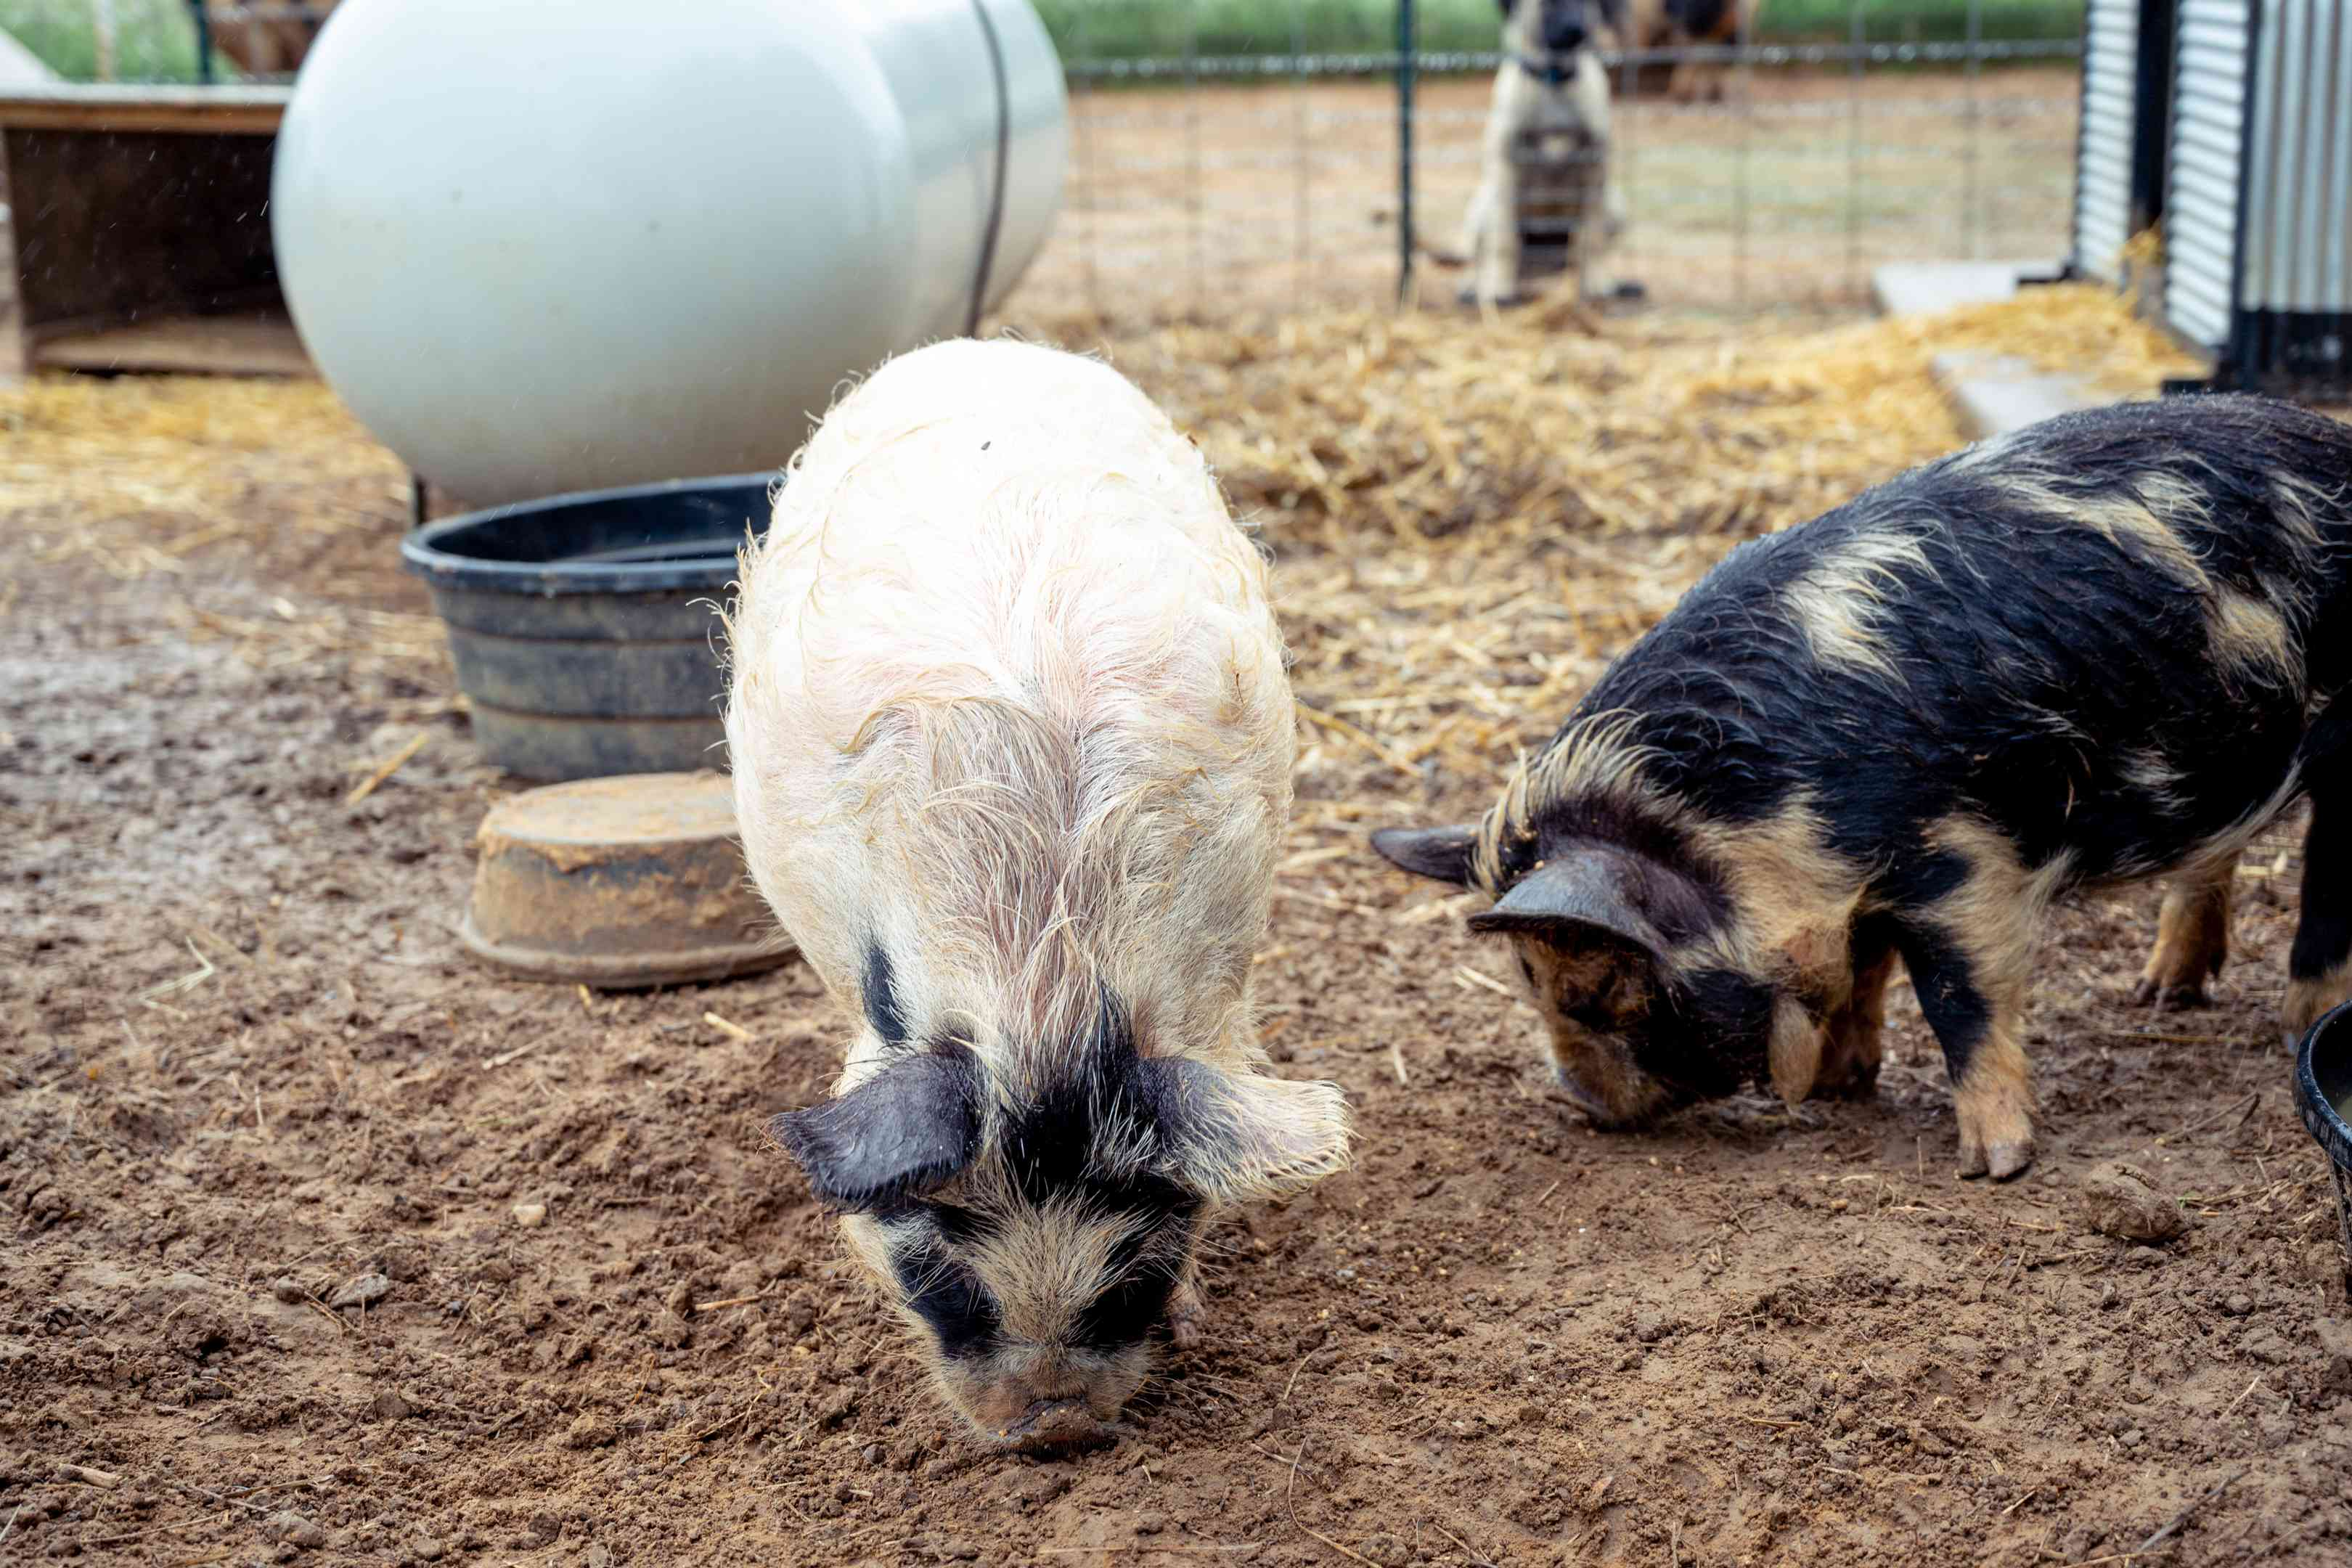 long-haired pigs nose around in muddy pit while dog watches outside fence